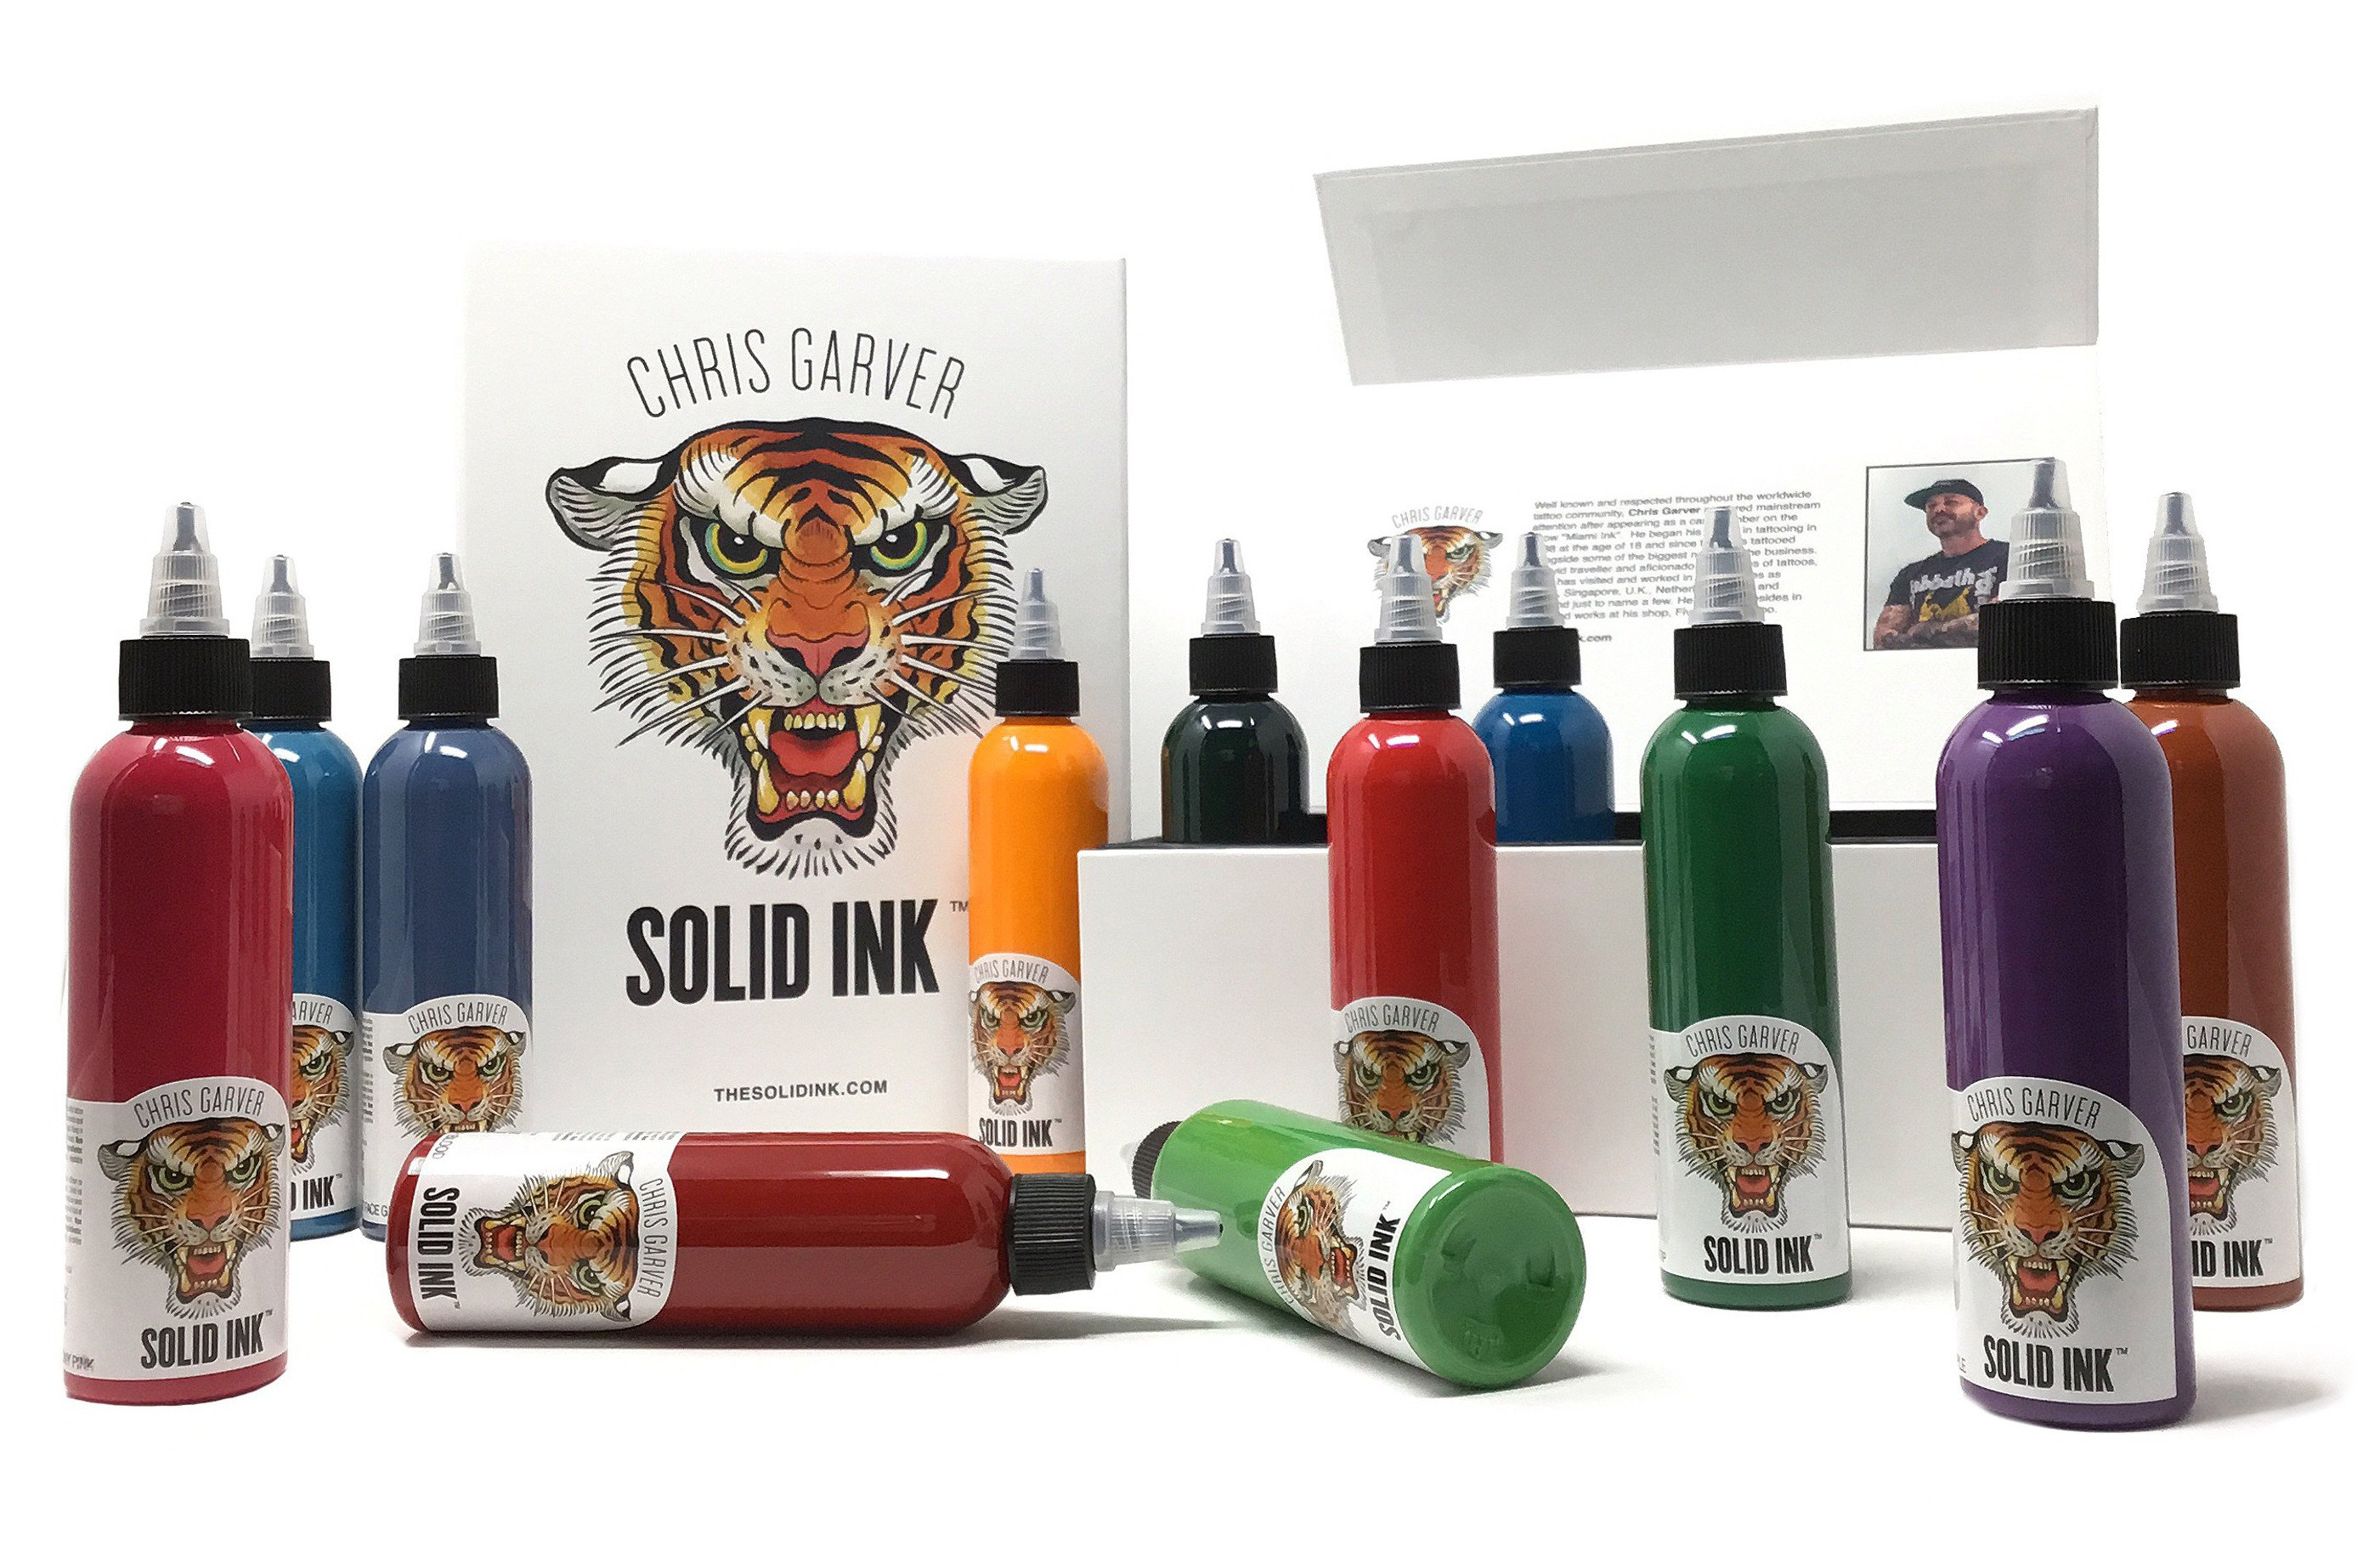 33d890609 Chris Garver 12 Colour 4oz Box Set - Solid Ink - Federico Ferroni ...